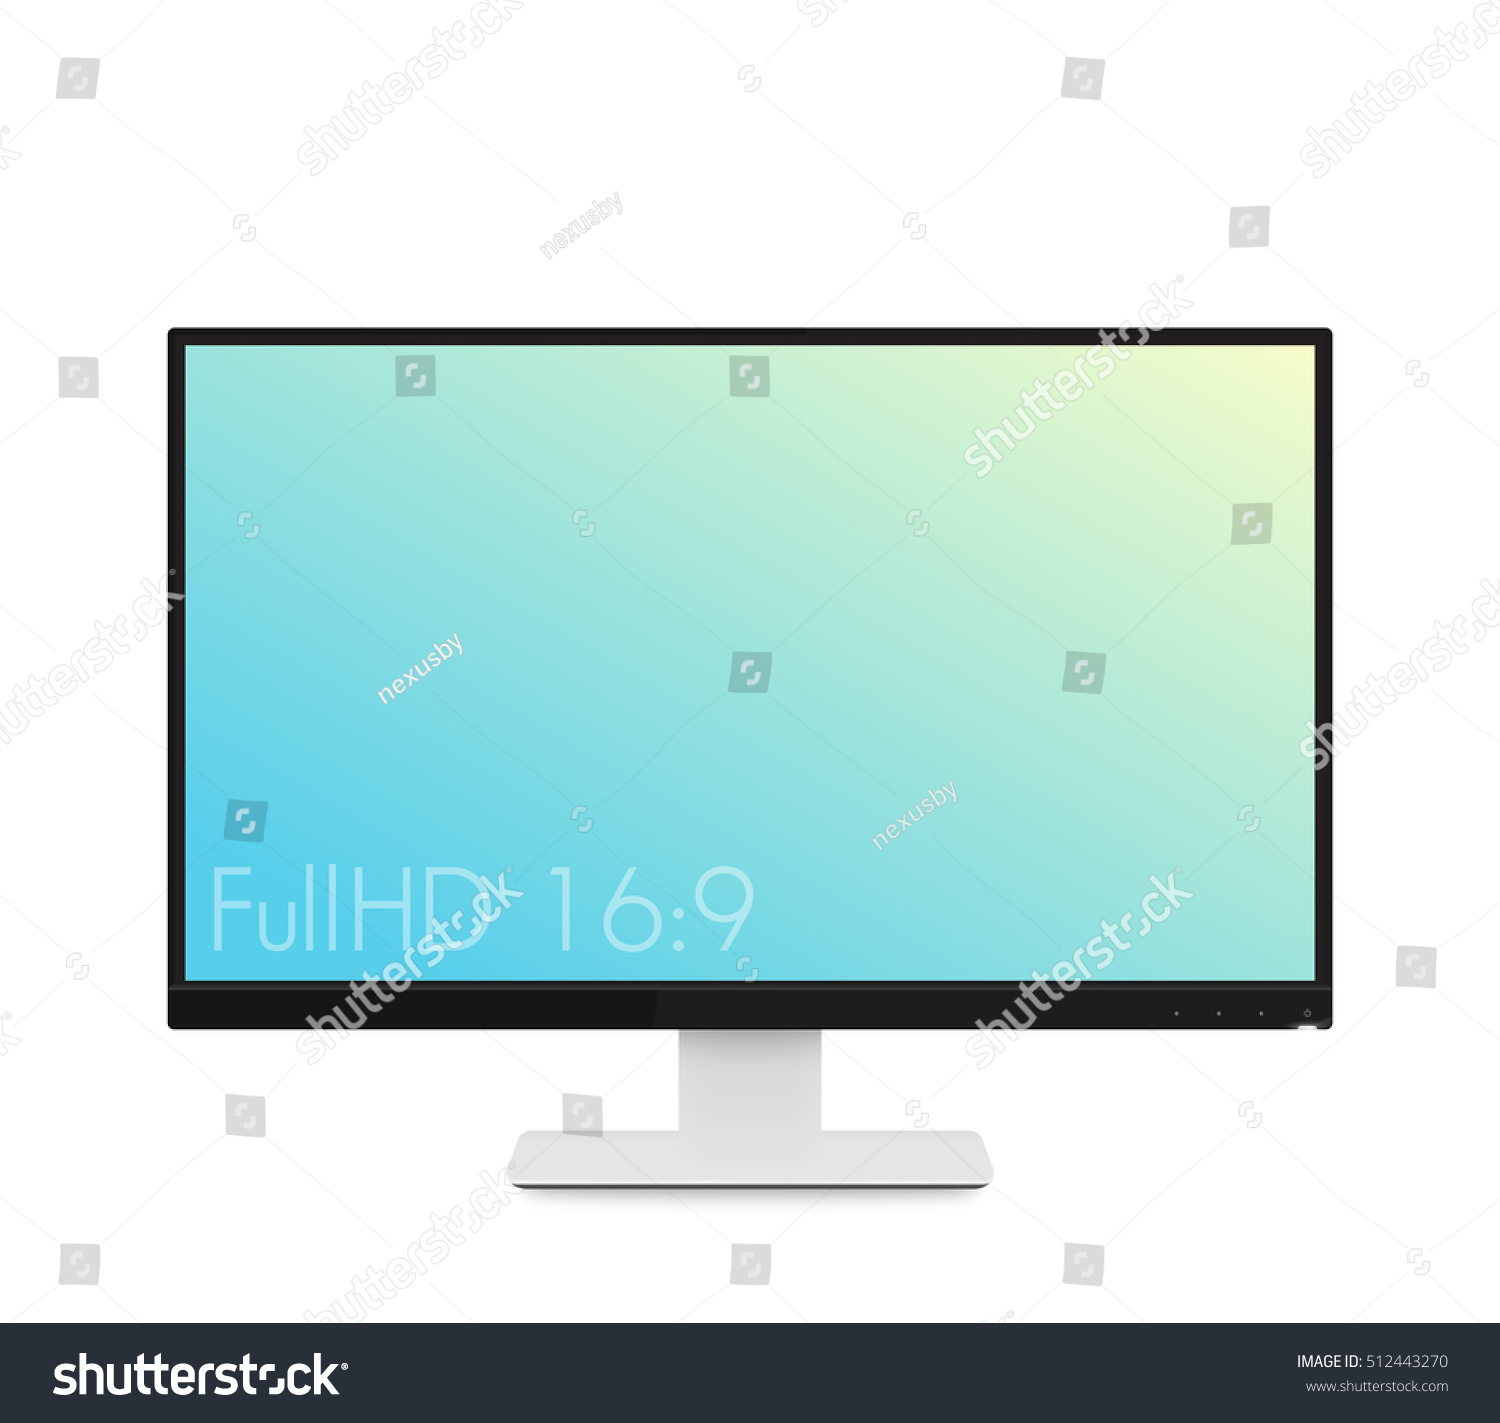 Modern High Definition Computer Monitor With An Image Of A Cloudy